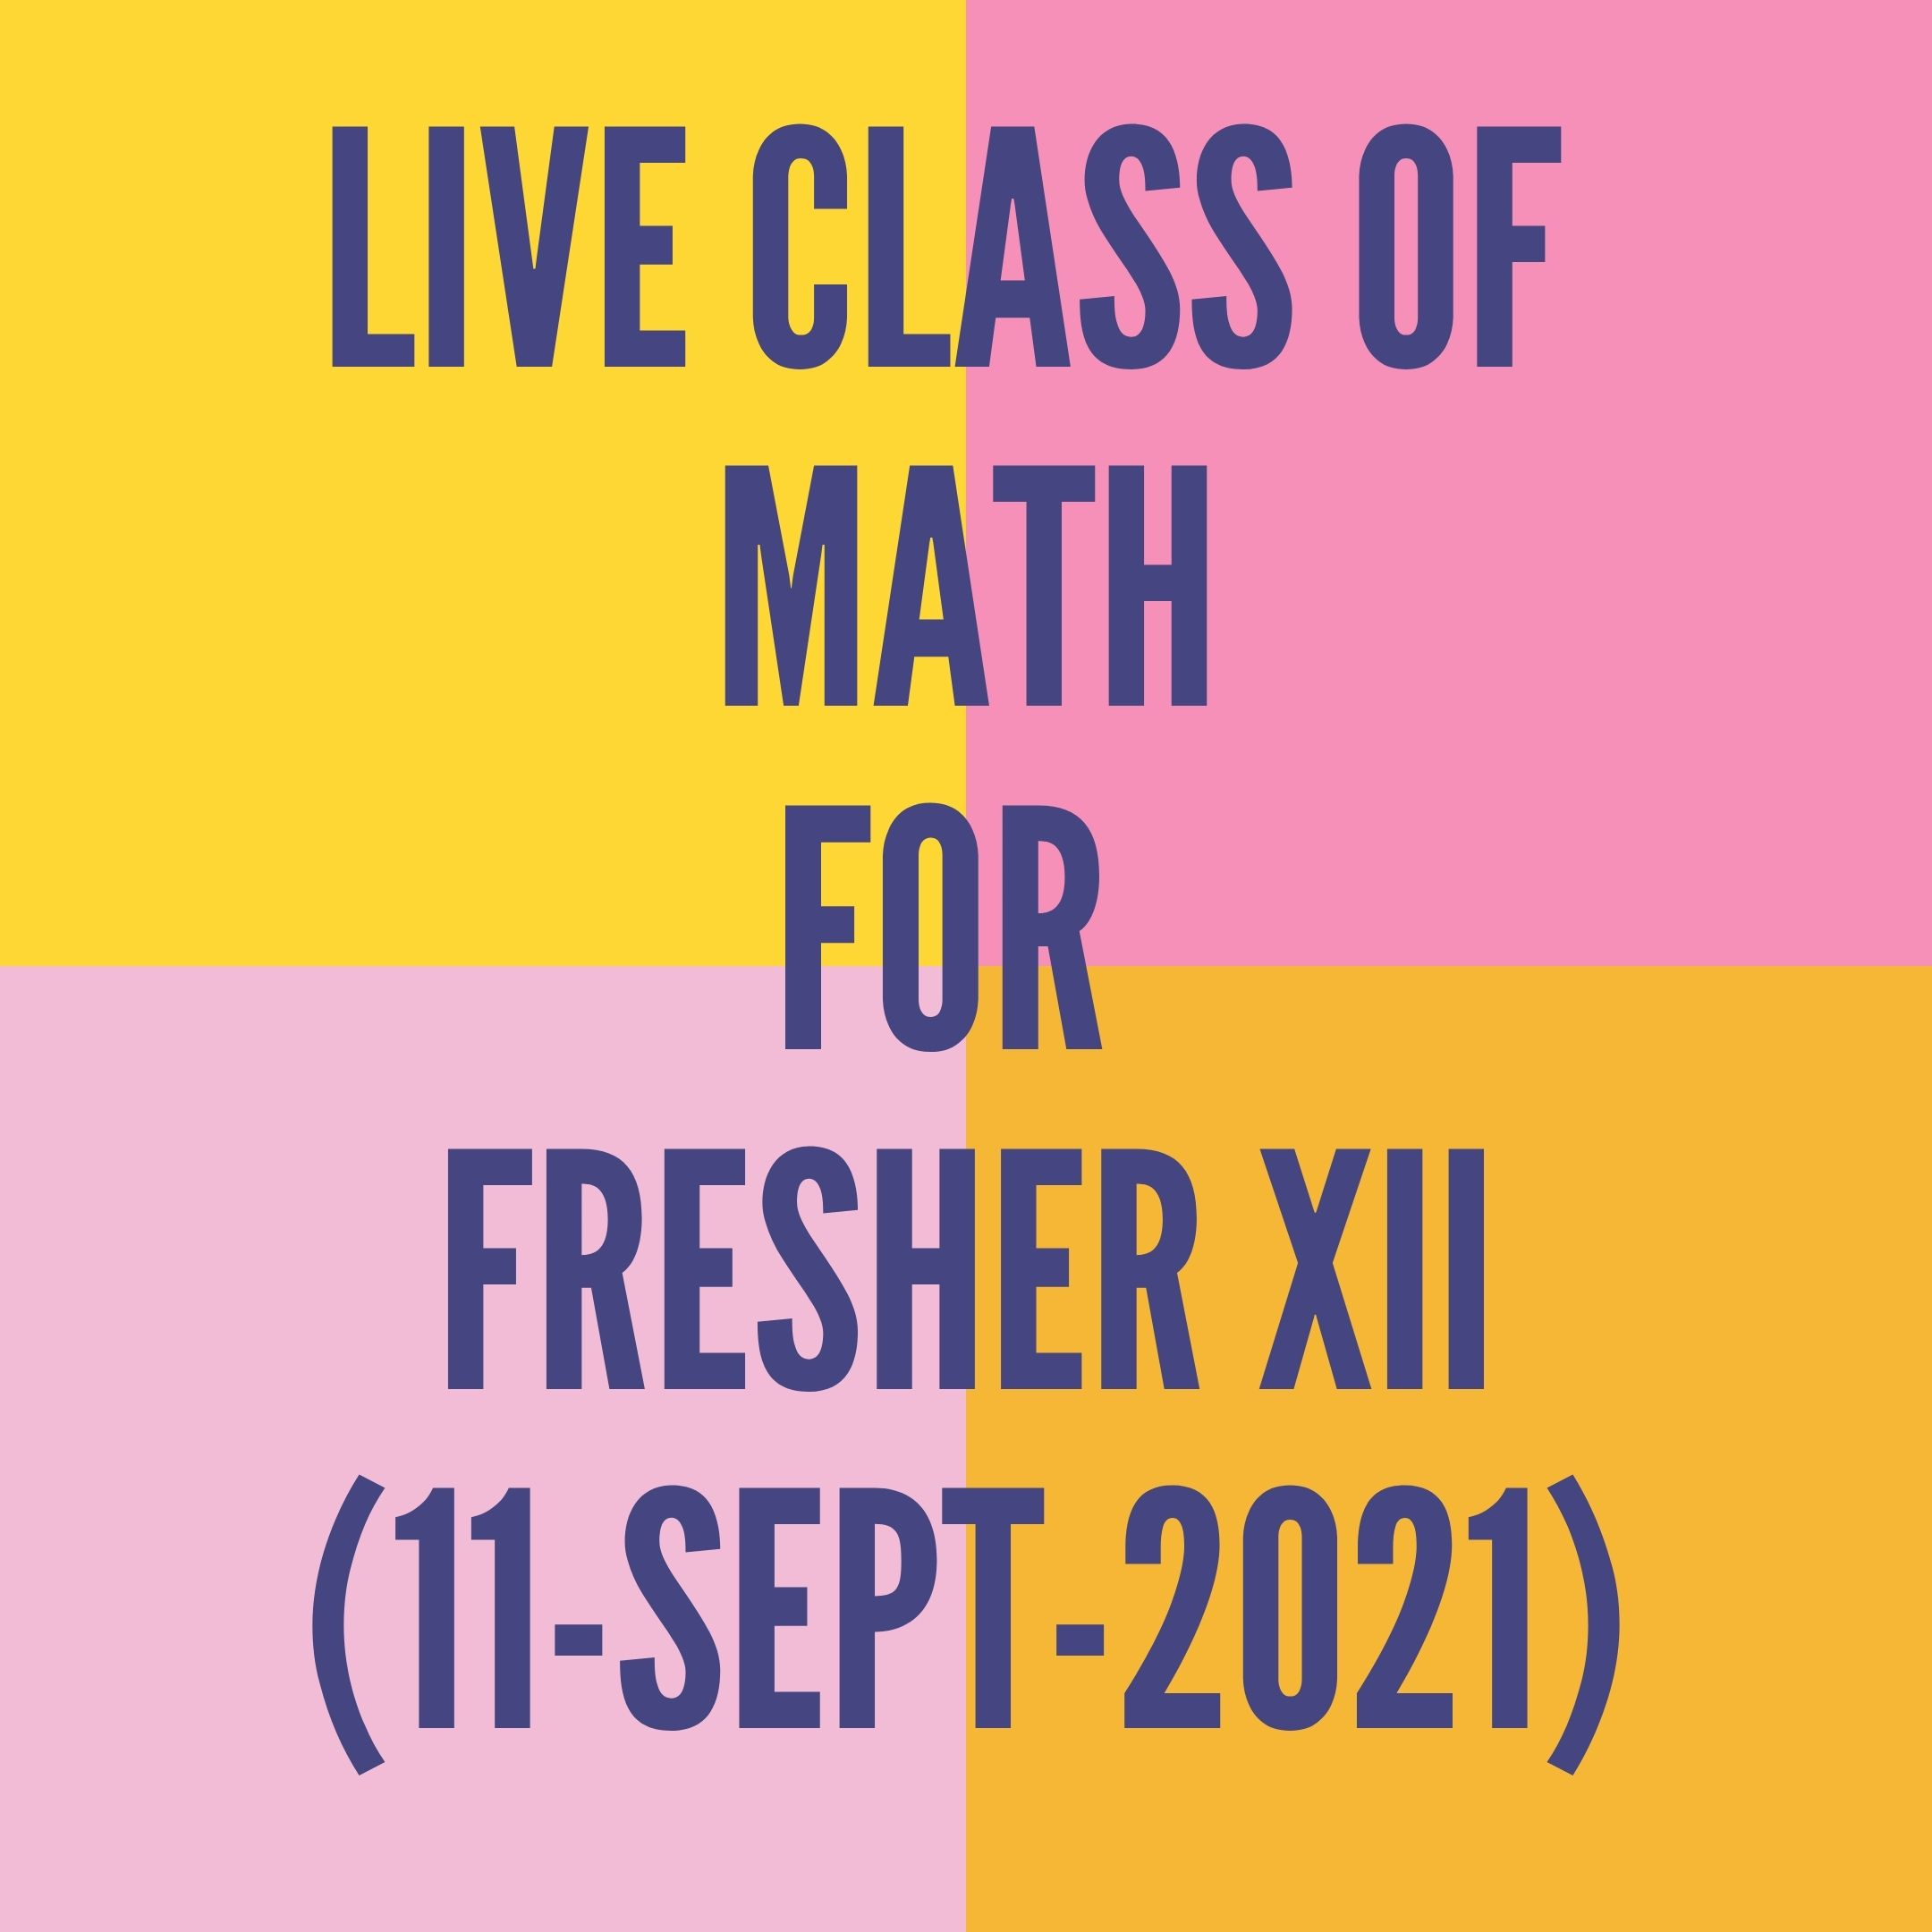 LIVE CLASS OF MATH FOR FRESHER XII (11-SEPT-2021)